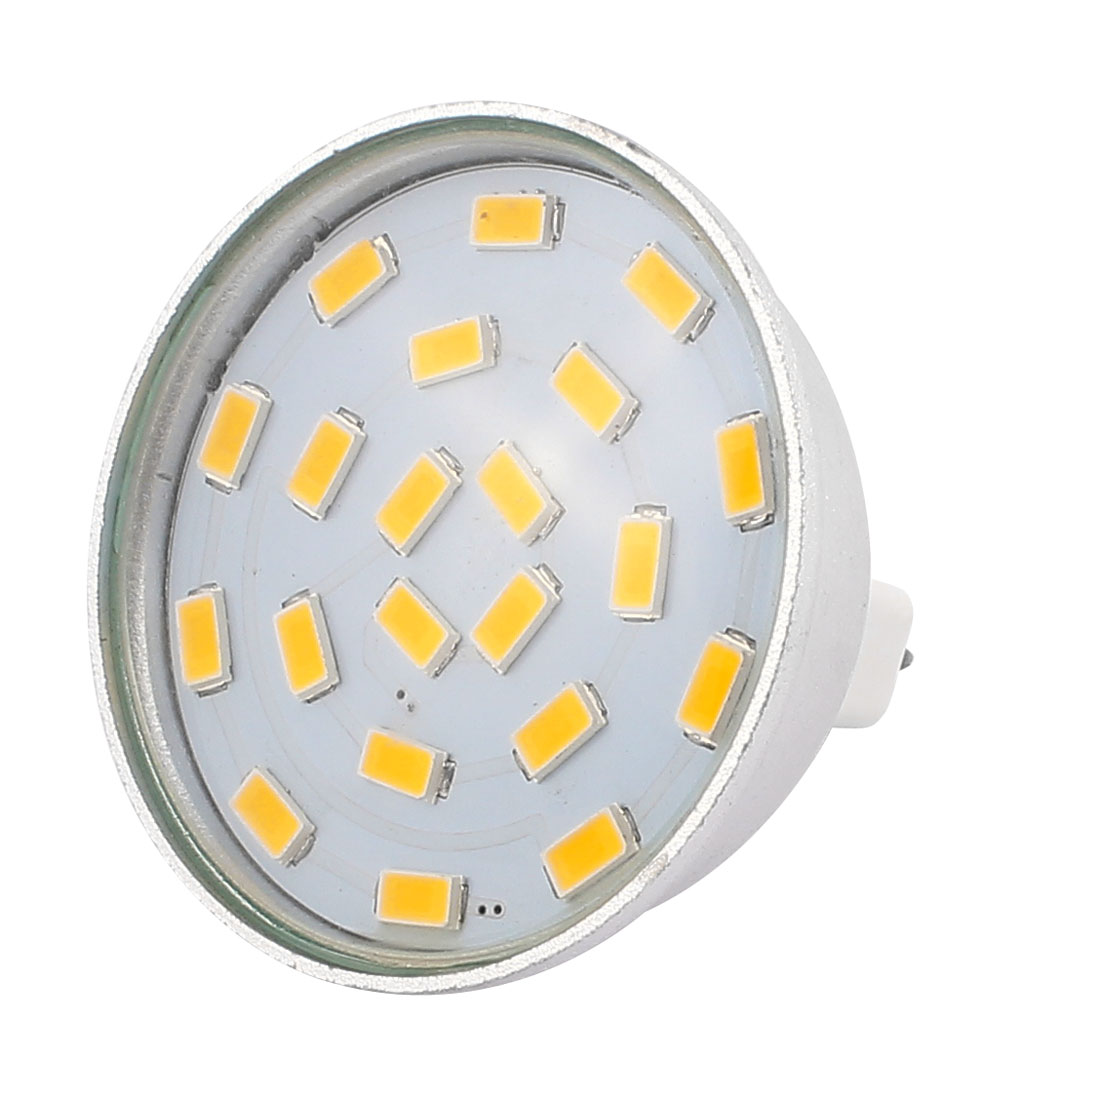 220V-240V 5W MR16 5730 SMD 21 LEDs LED Bulb Light Spotlight Lamp Energy Save Warm White